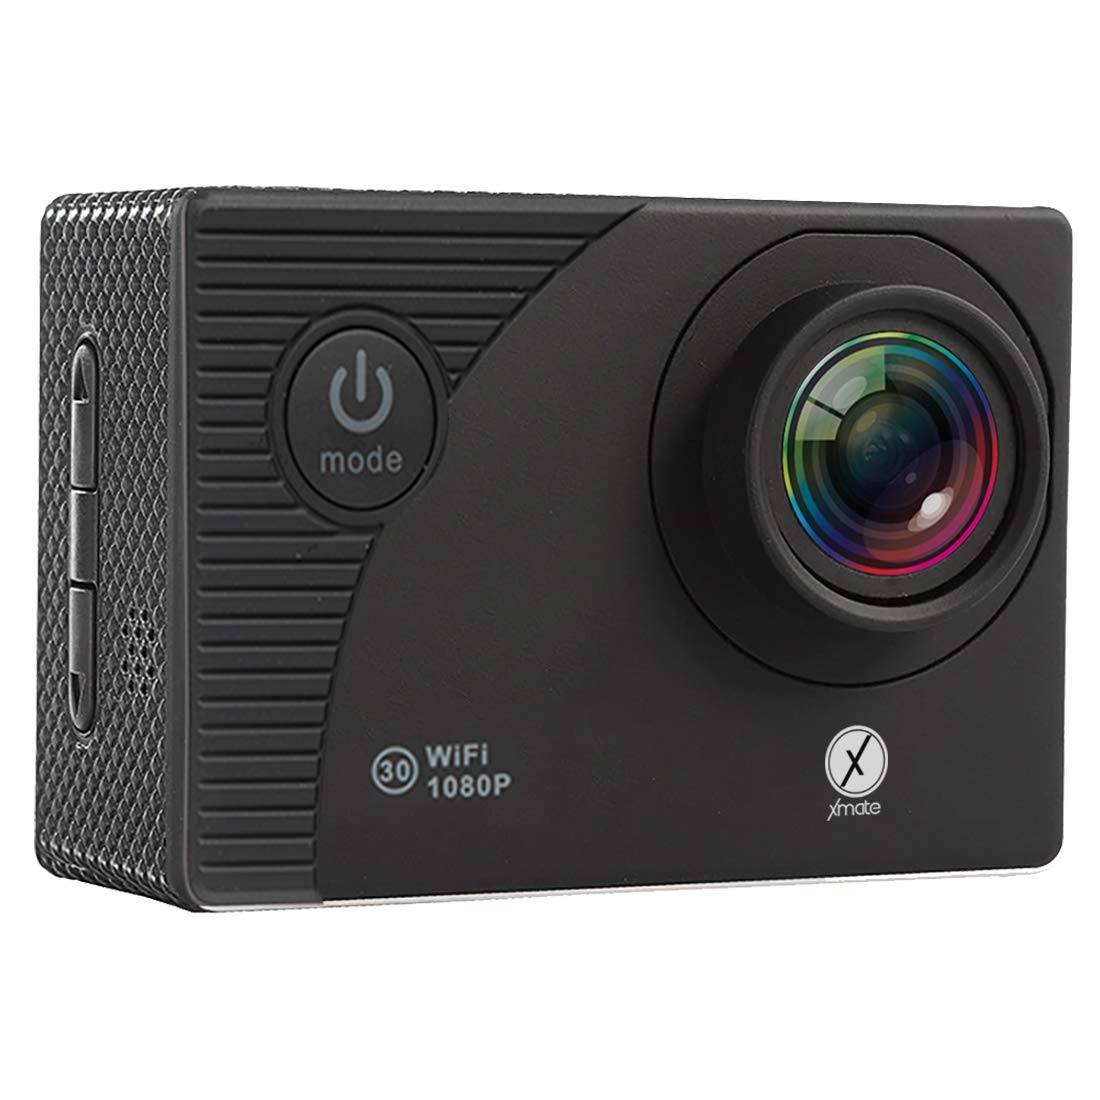 Xmate Shot Sports Action Camera (Black)  16MP Camera  1080P Full HD Video Recording   Water-Resistant   Supports Micro SD Card up to 32G (Revived)